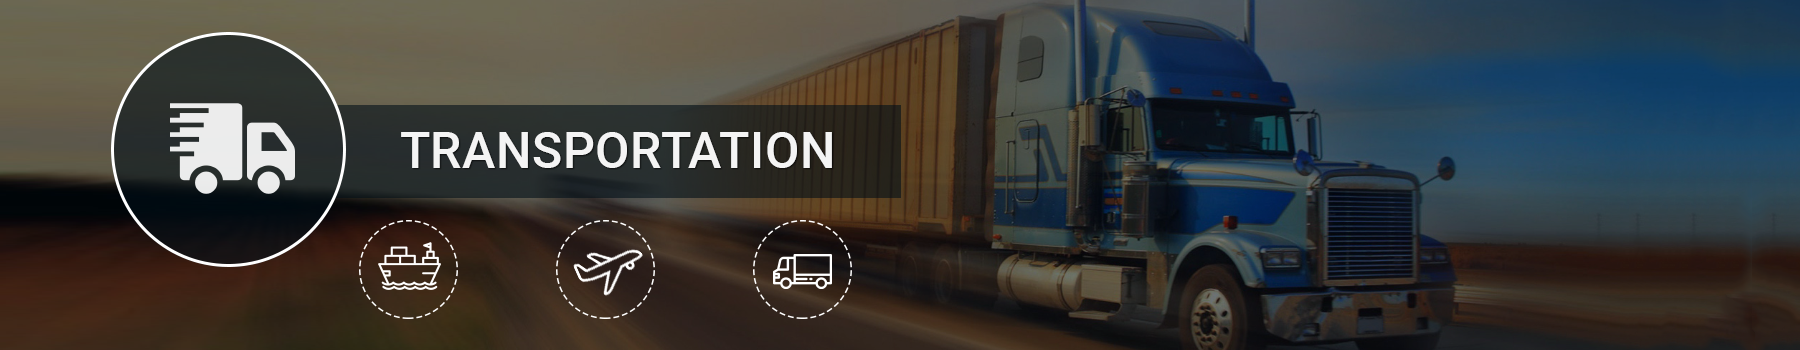 supply chain management services transportation